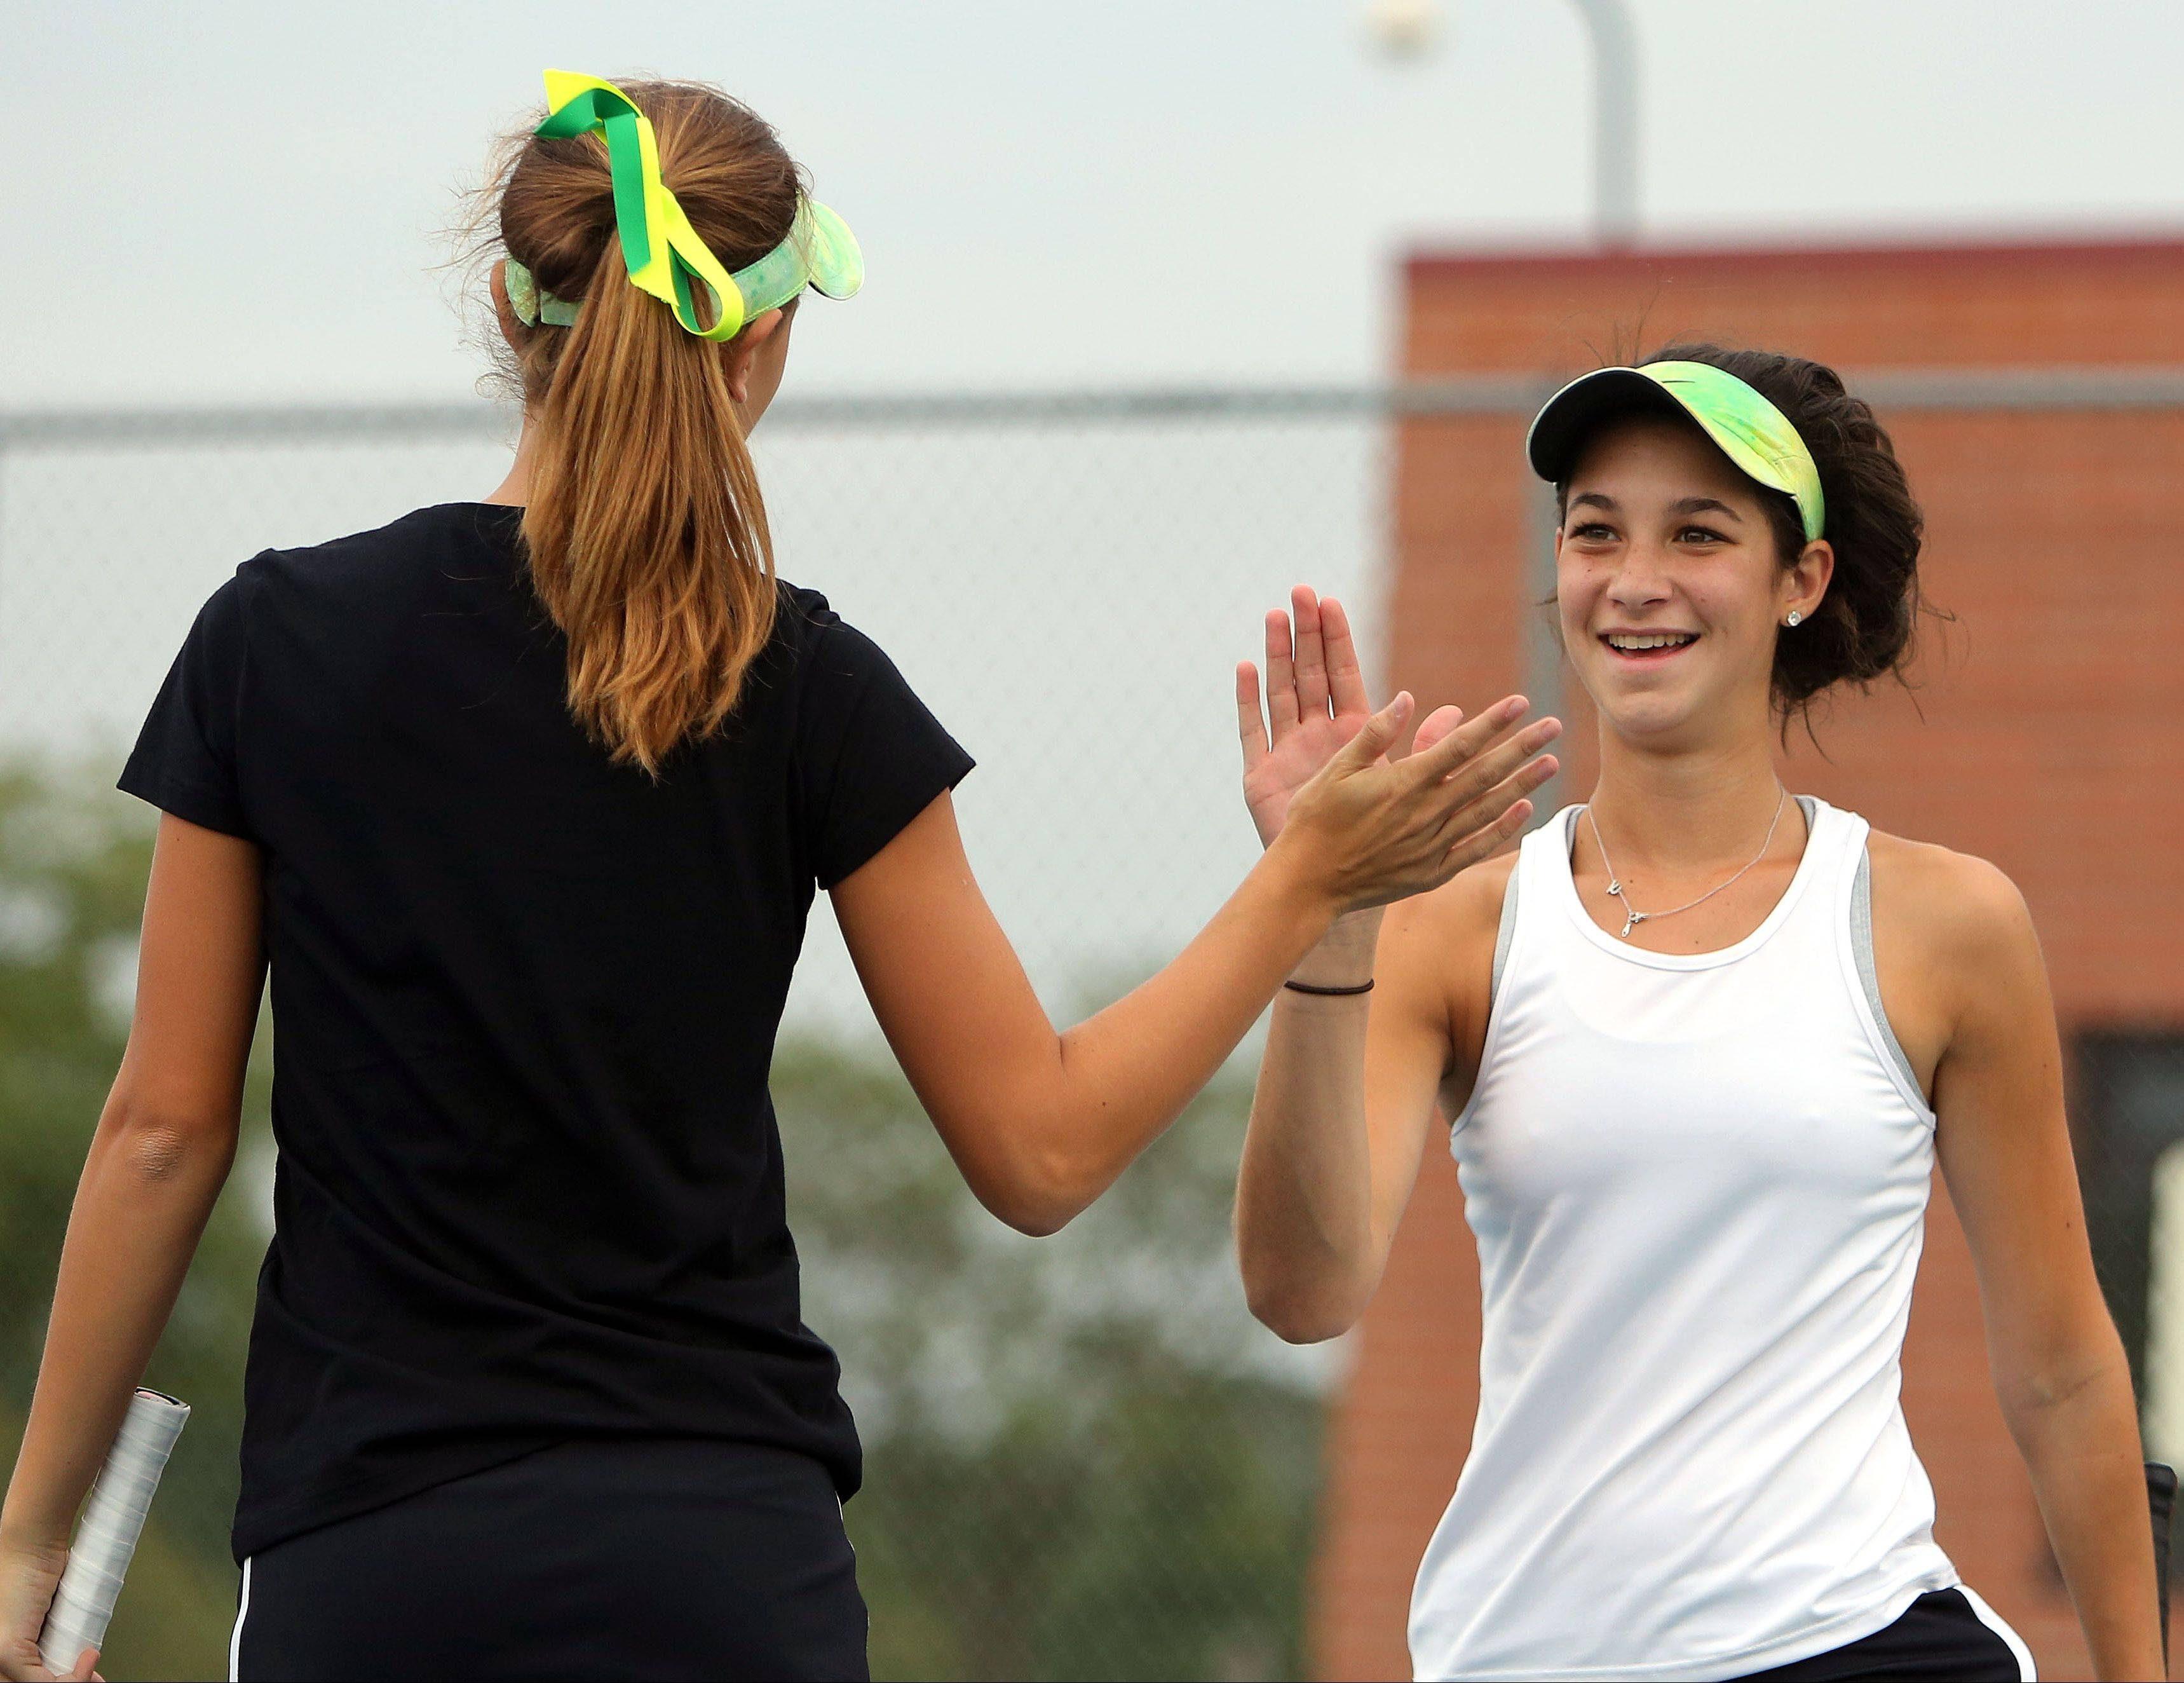 Stevenson's doubles team of Lexxi Kiven, left, and Kendall Kirsch high-five after a point Wednesday at Warren.